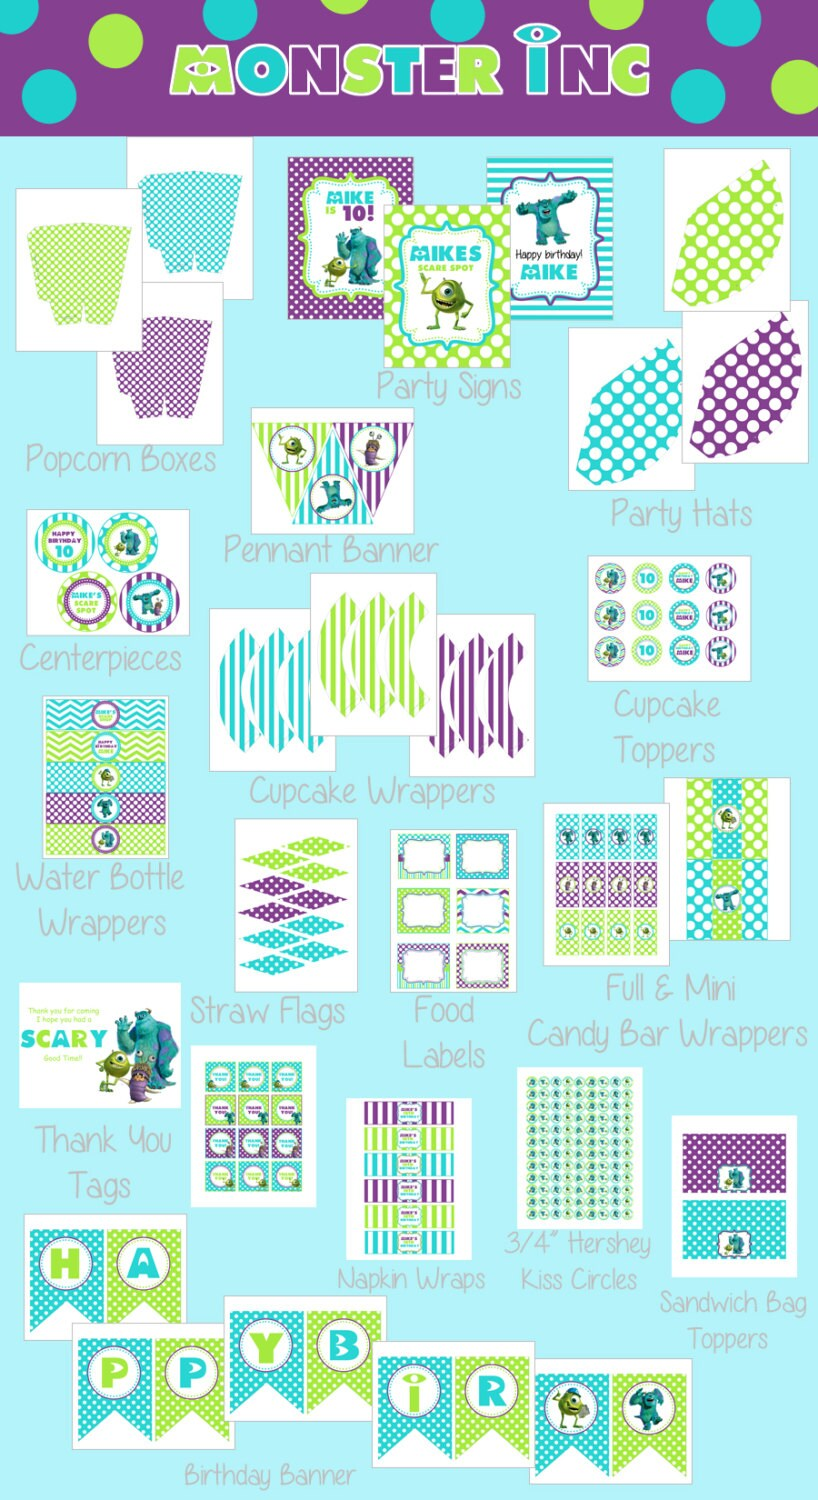 ... Inc Inspired Kids Birthday Party Digtial PRINTABLE Party Package